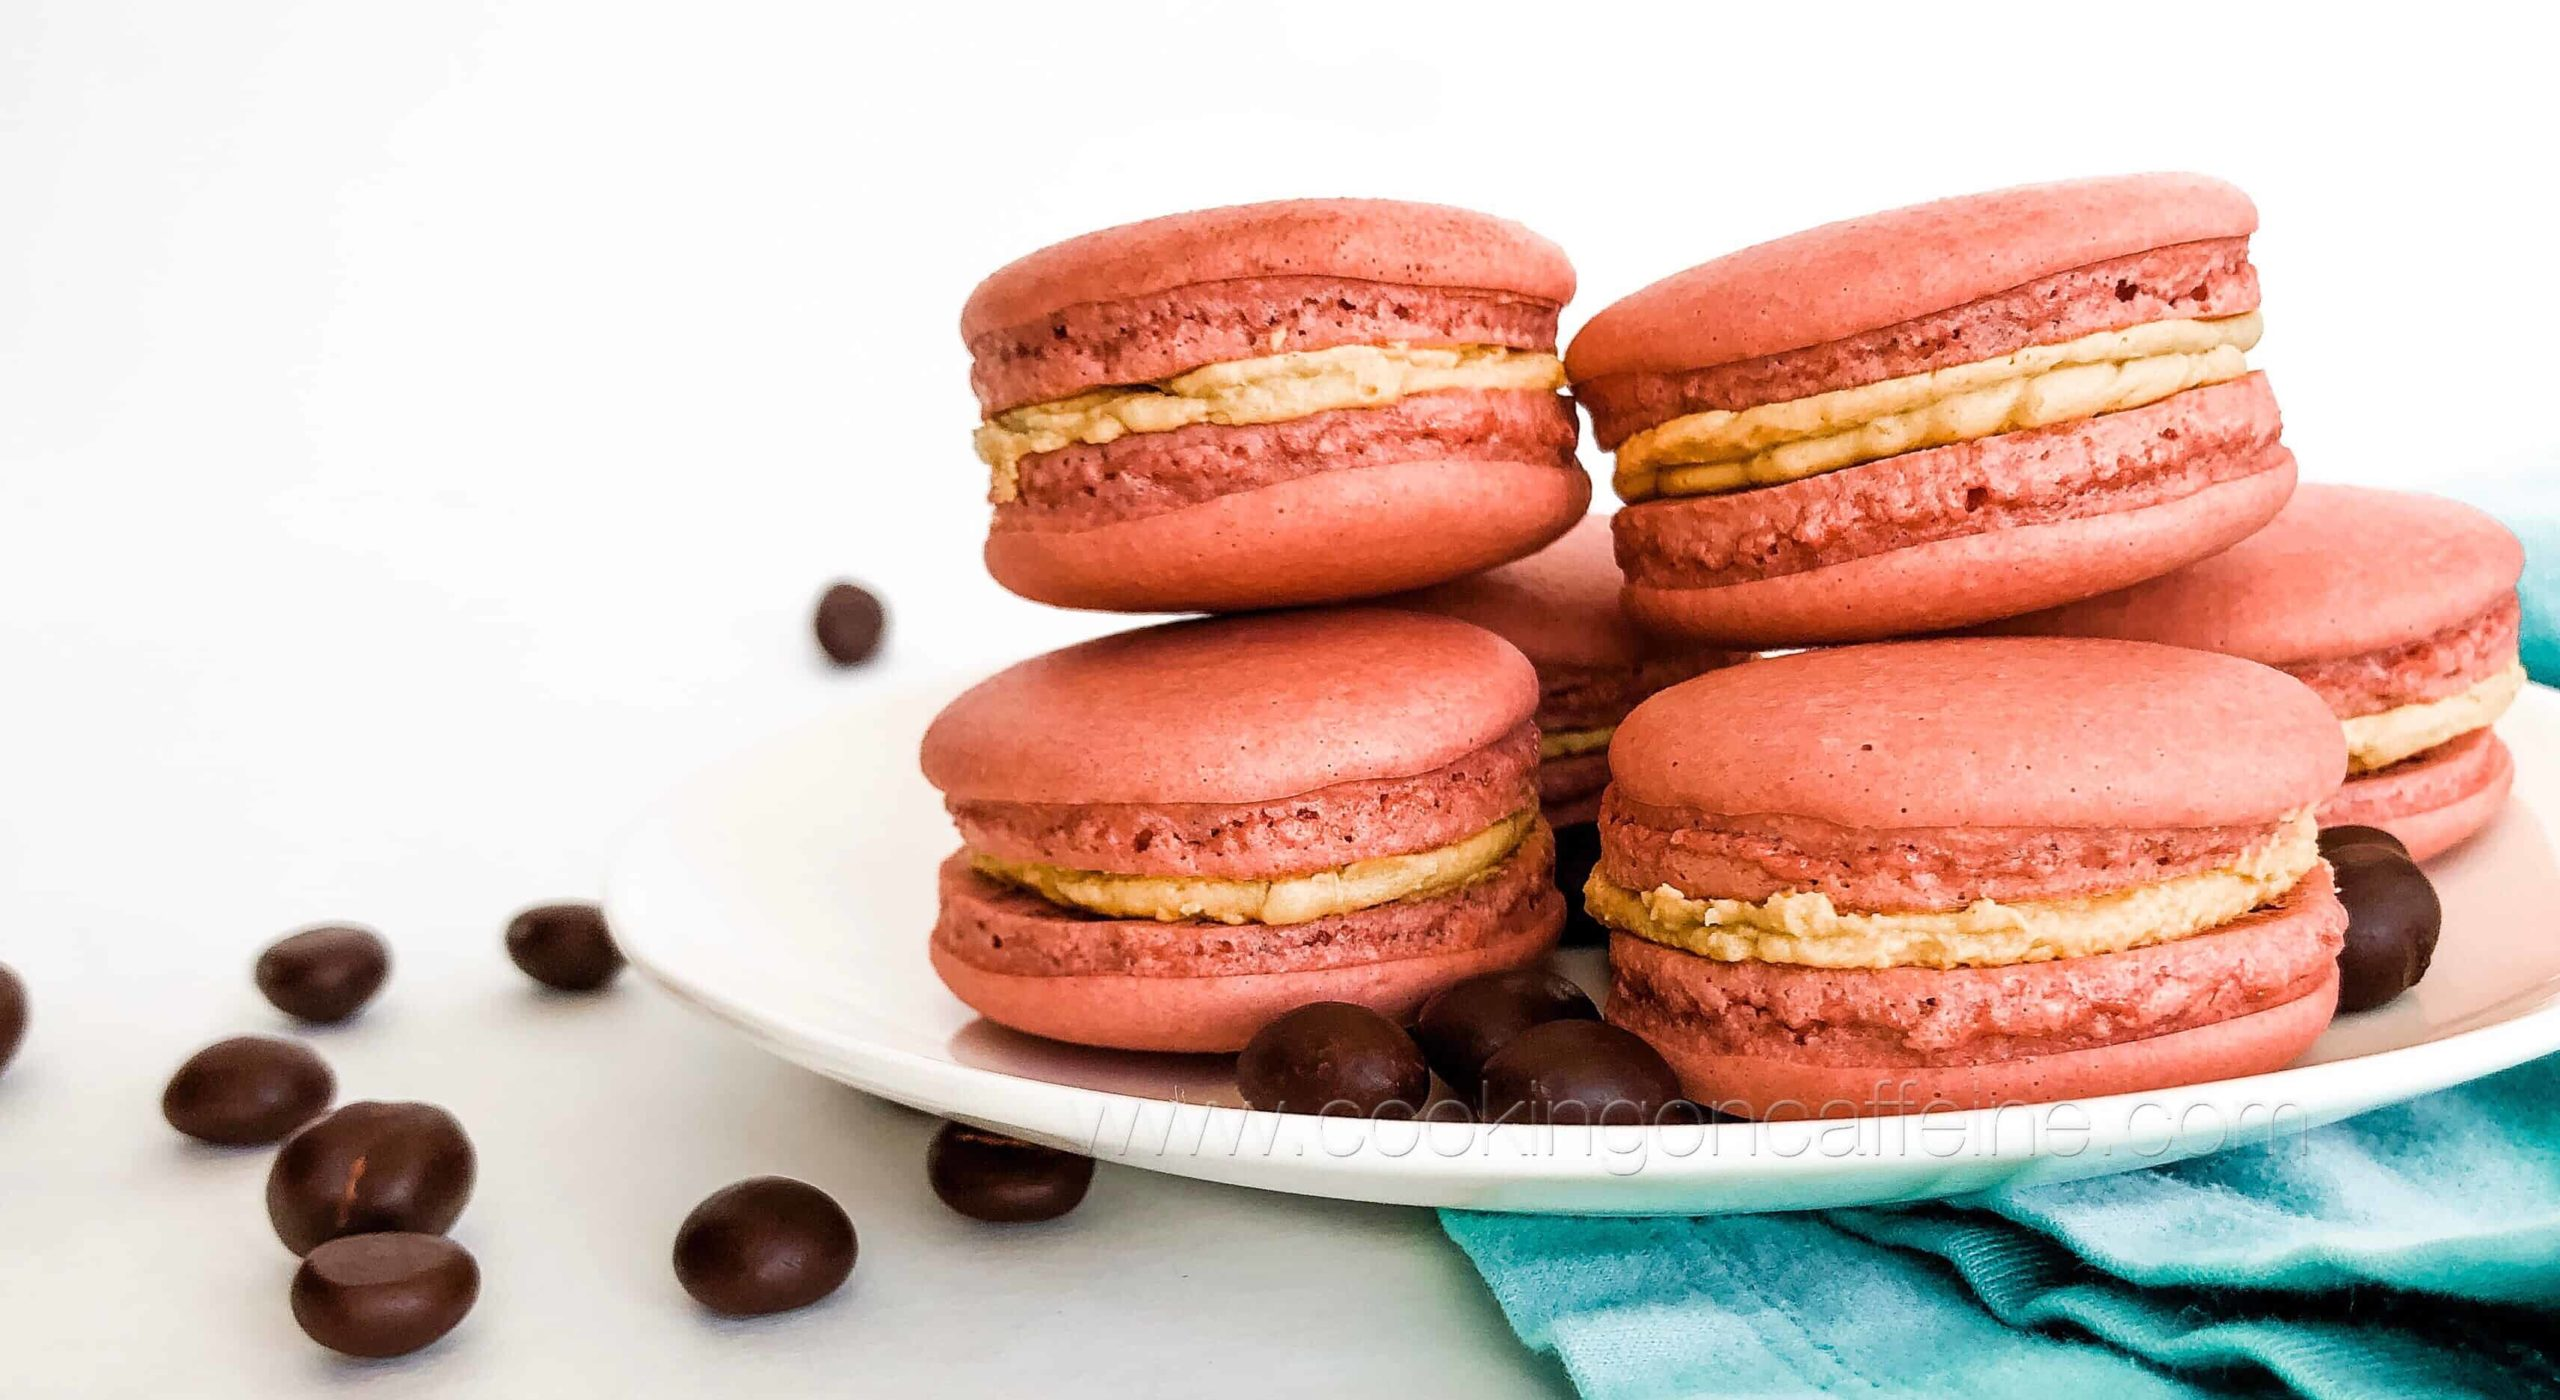 Salmon colored macaron cookies on a white plate, on a sky blue towel and surrounded by chocolate covered coffee beans